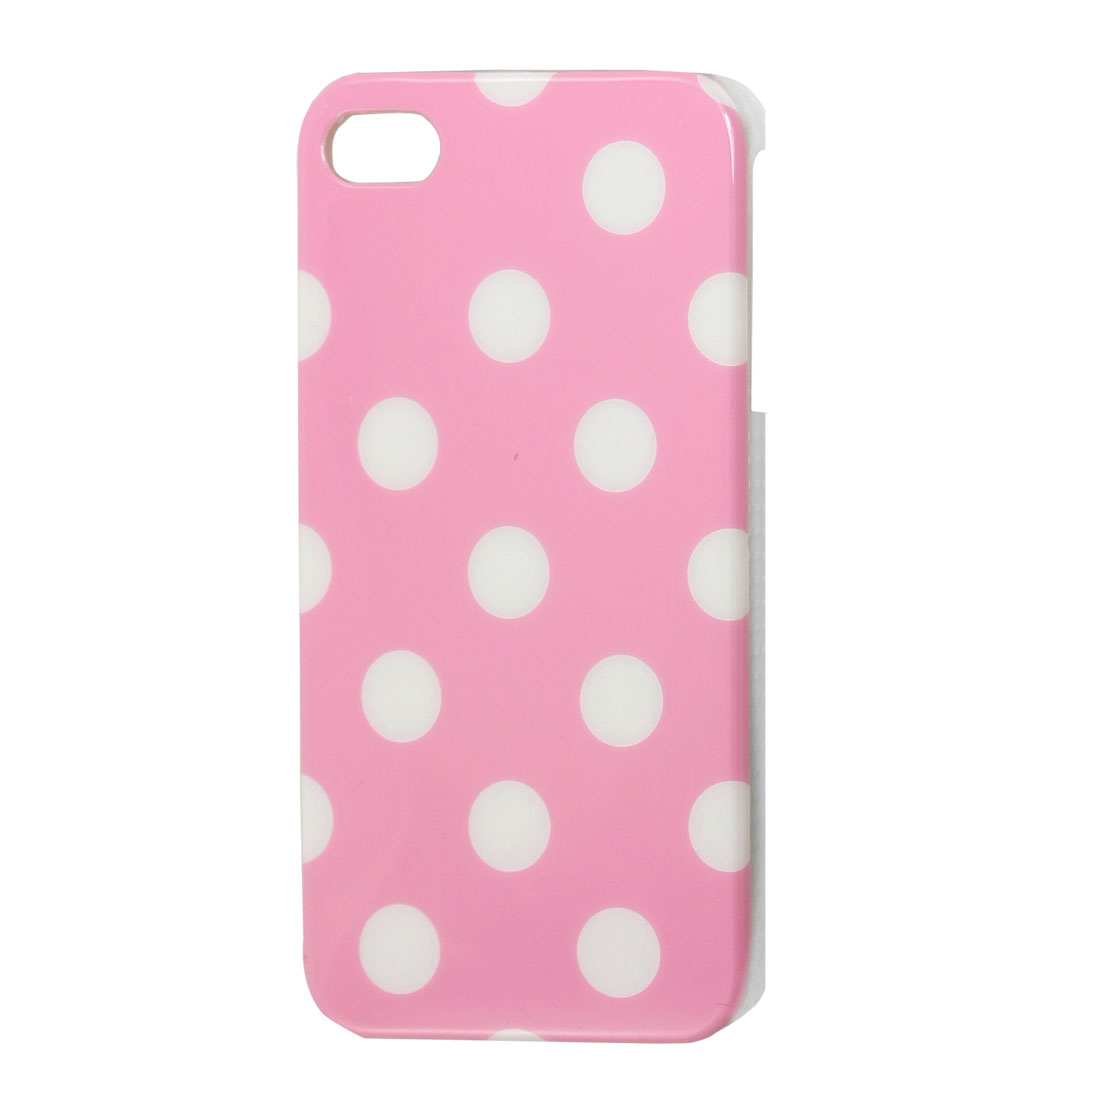 IMD White Dots Pattern Hard Plastic Back Case Cover for iPhone 4 4G 4S